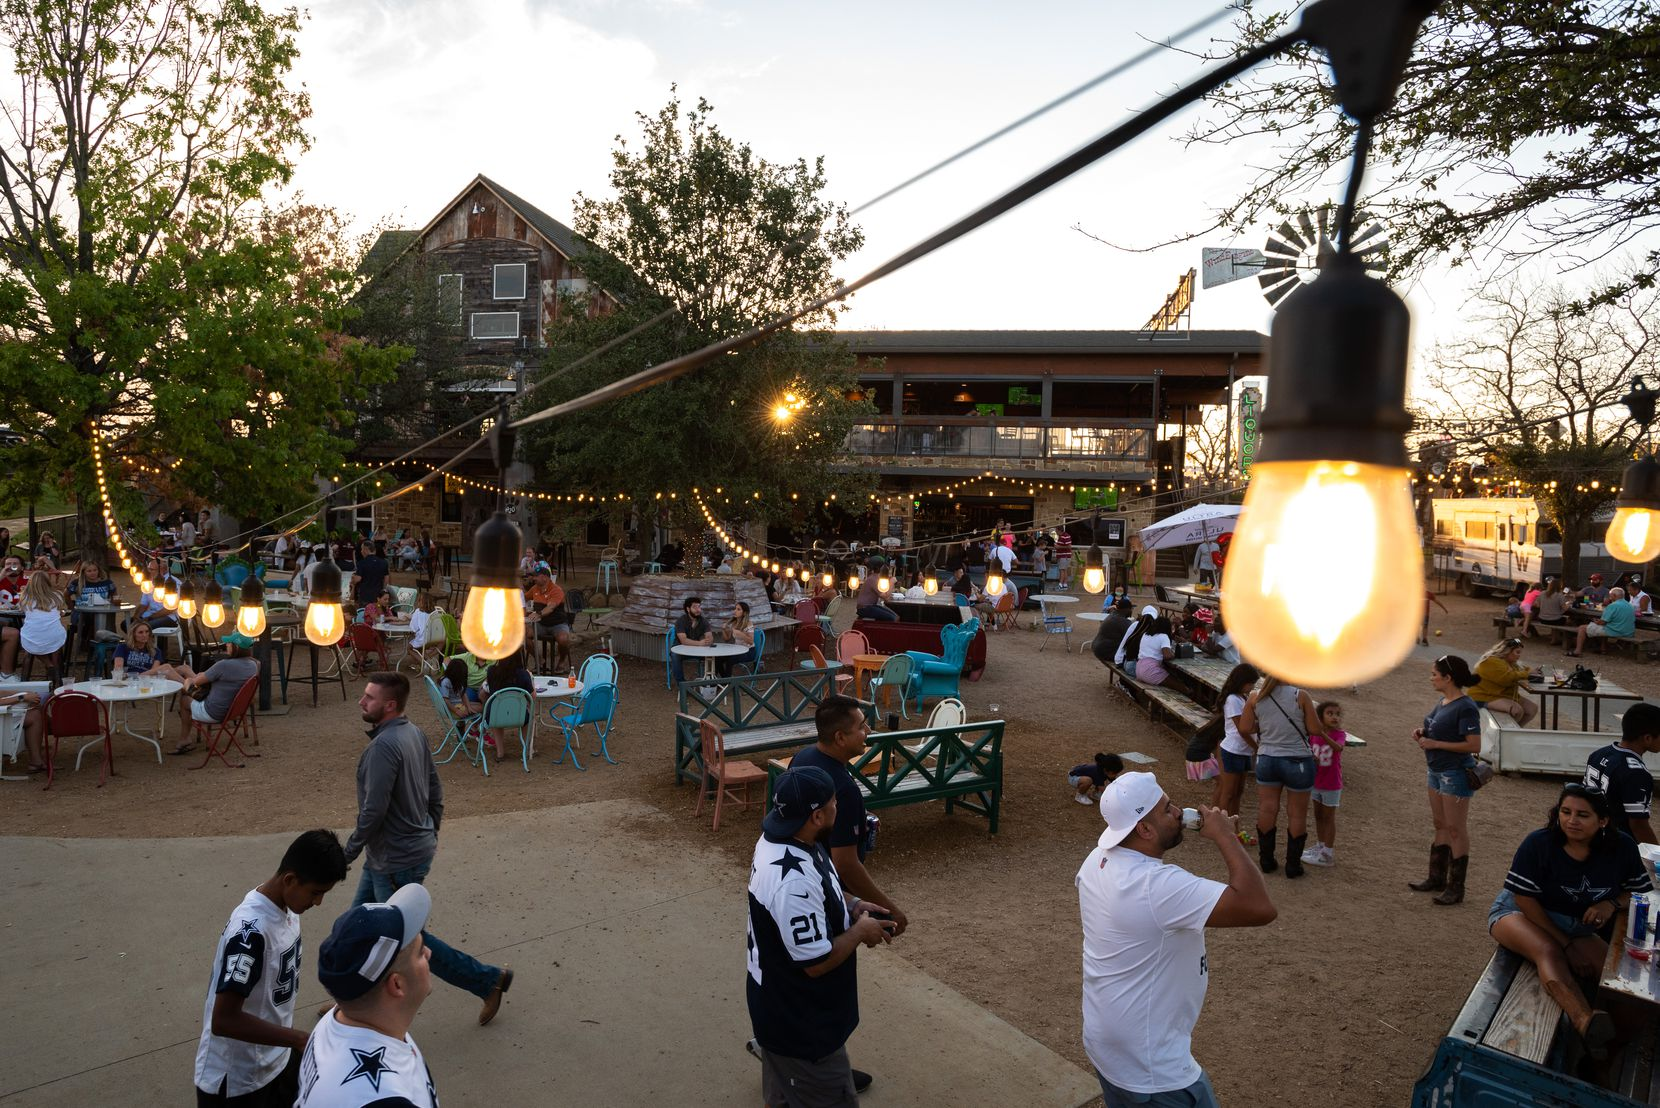 Truck Yard has room for lots of people — a perk during a pandemic.